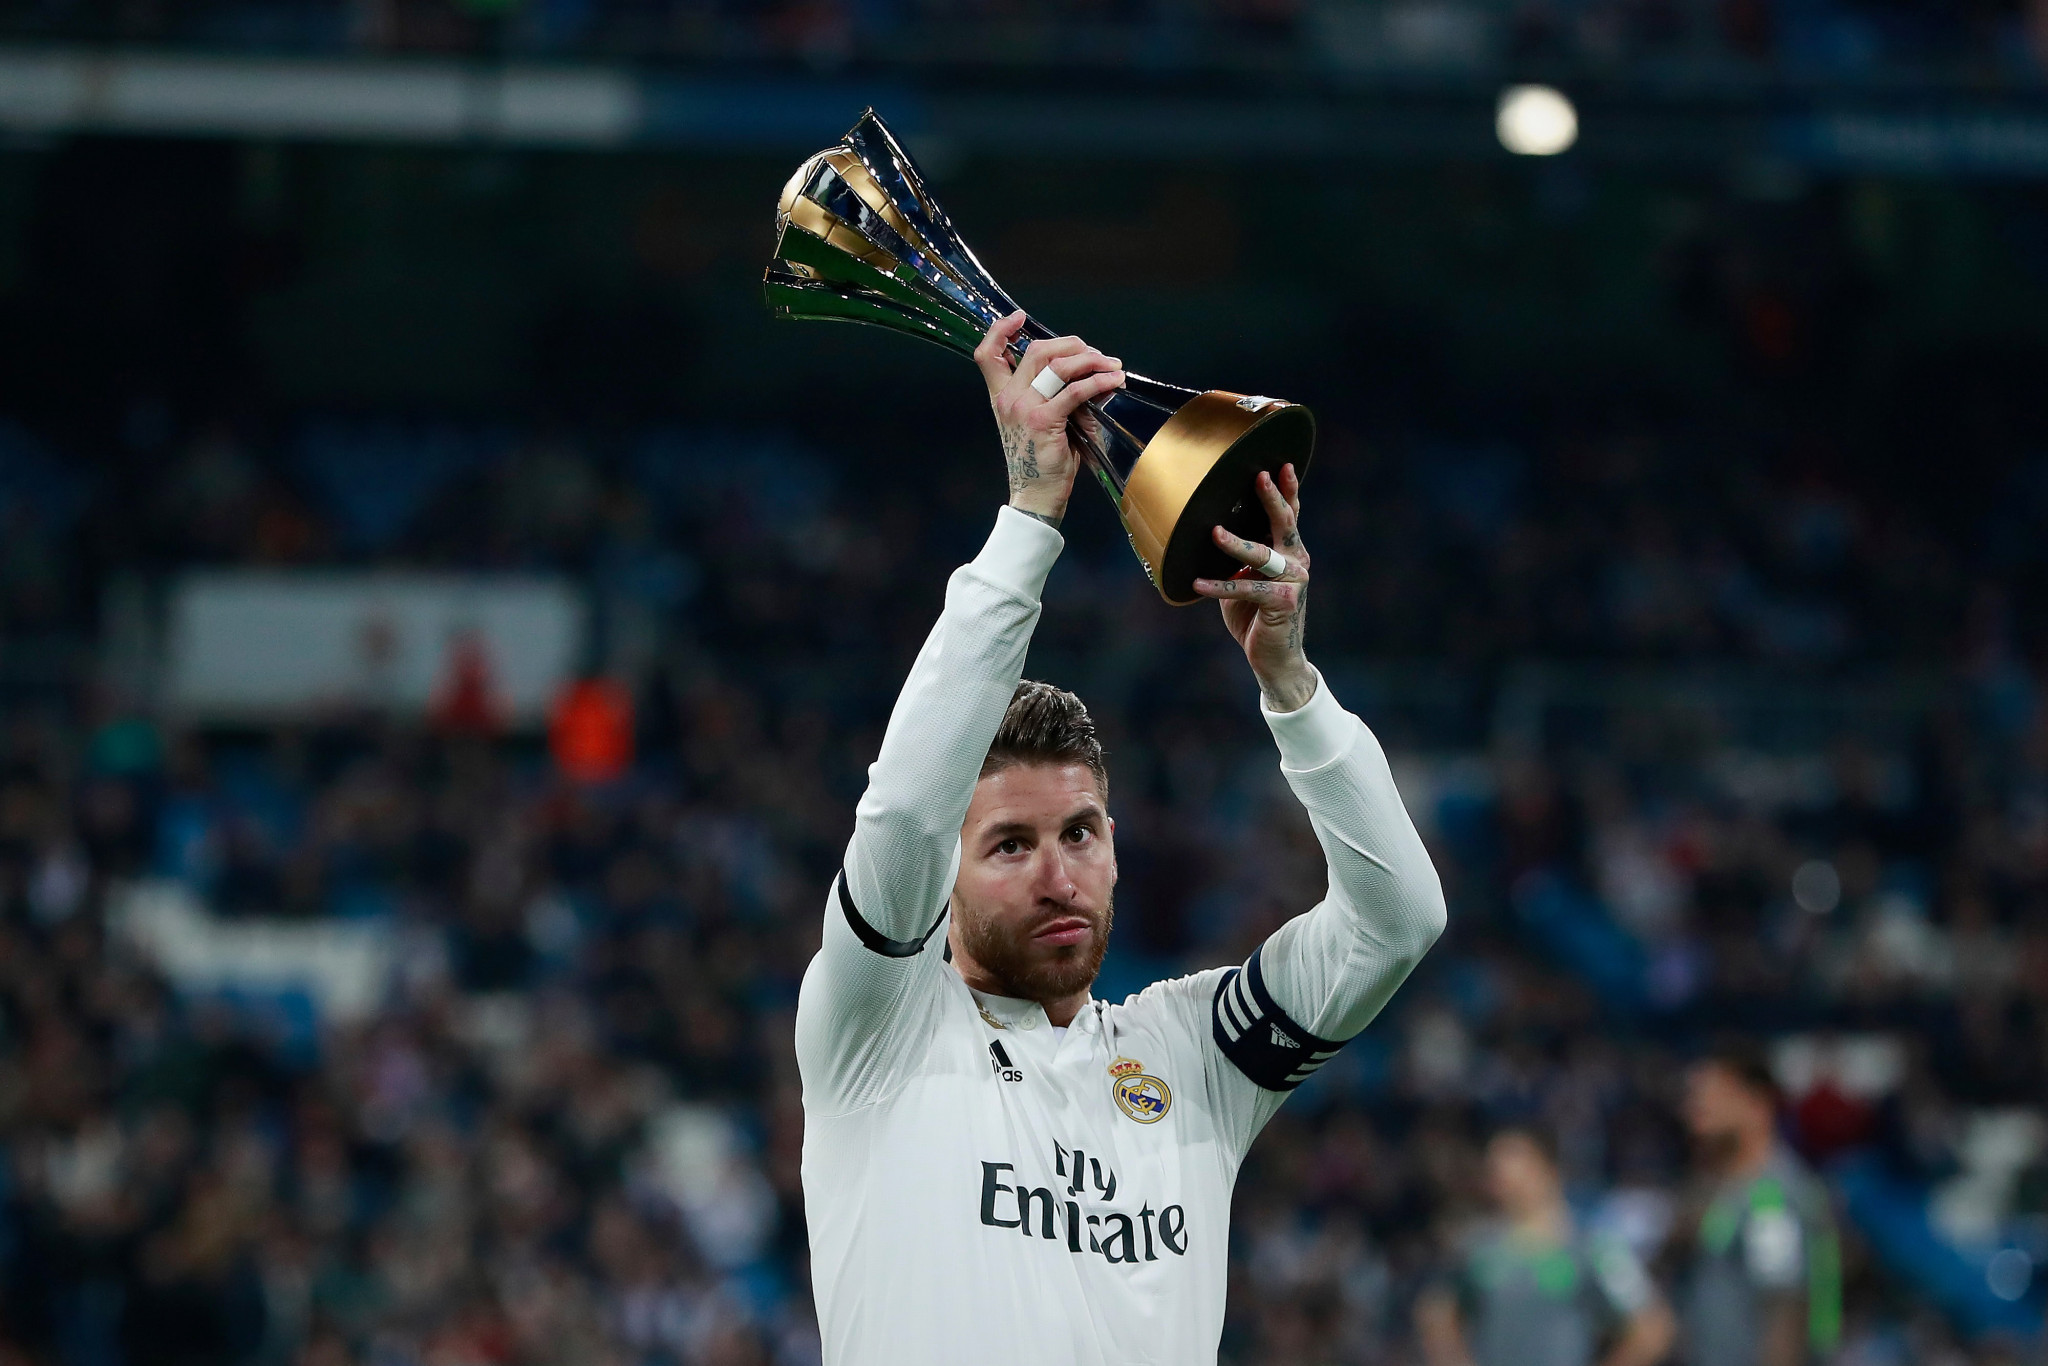 Spain's Real Madrid won the 2018 FIFA Club World Cup, which only consisted of seven teams ©Getty Images